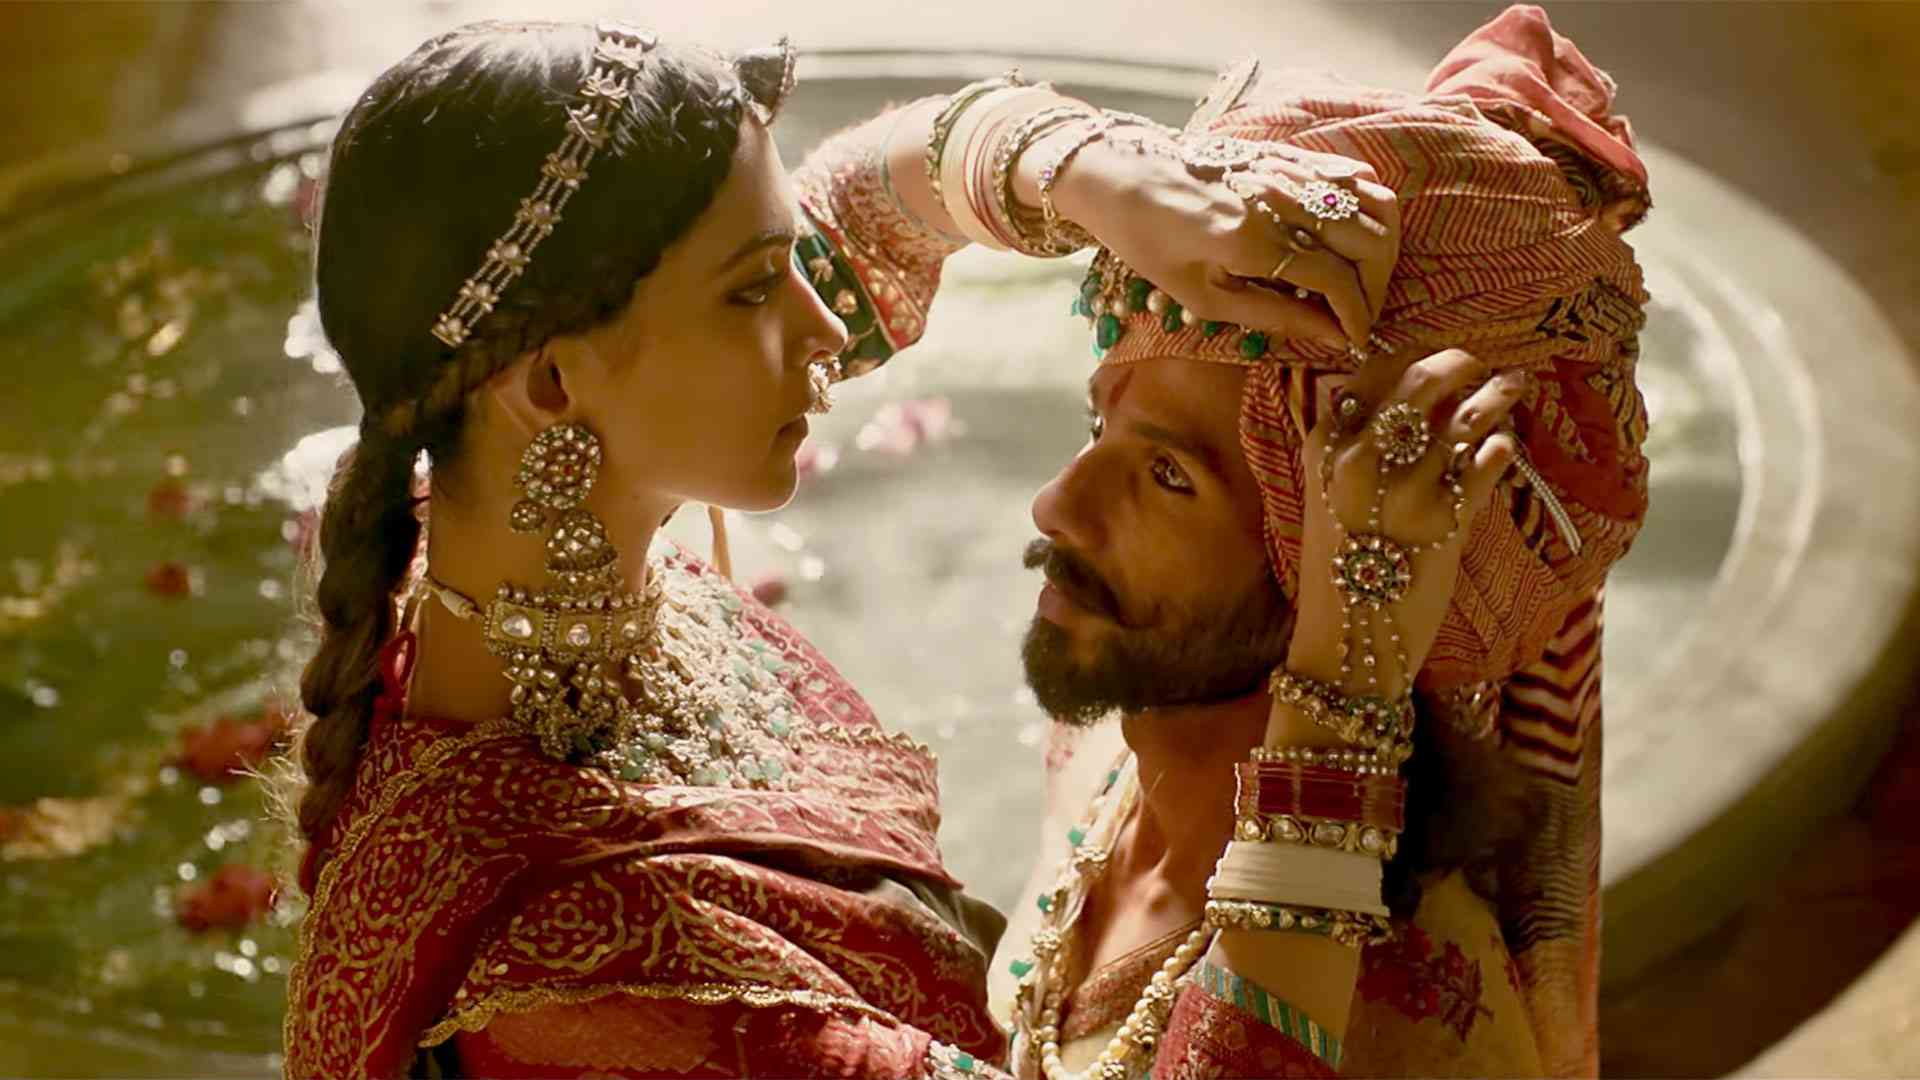 Padmavati film is partially based on historical facts